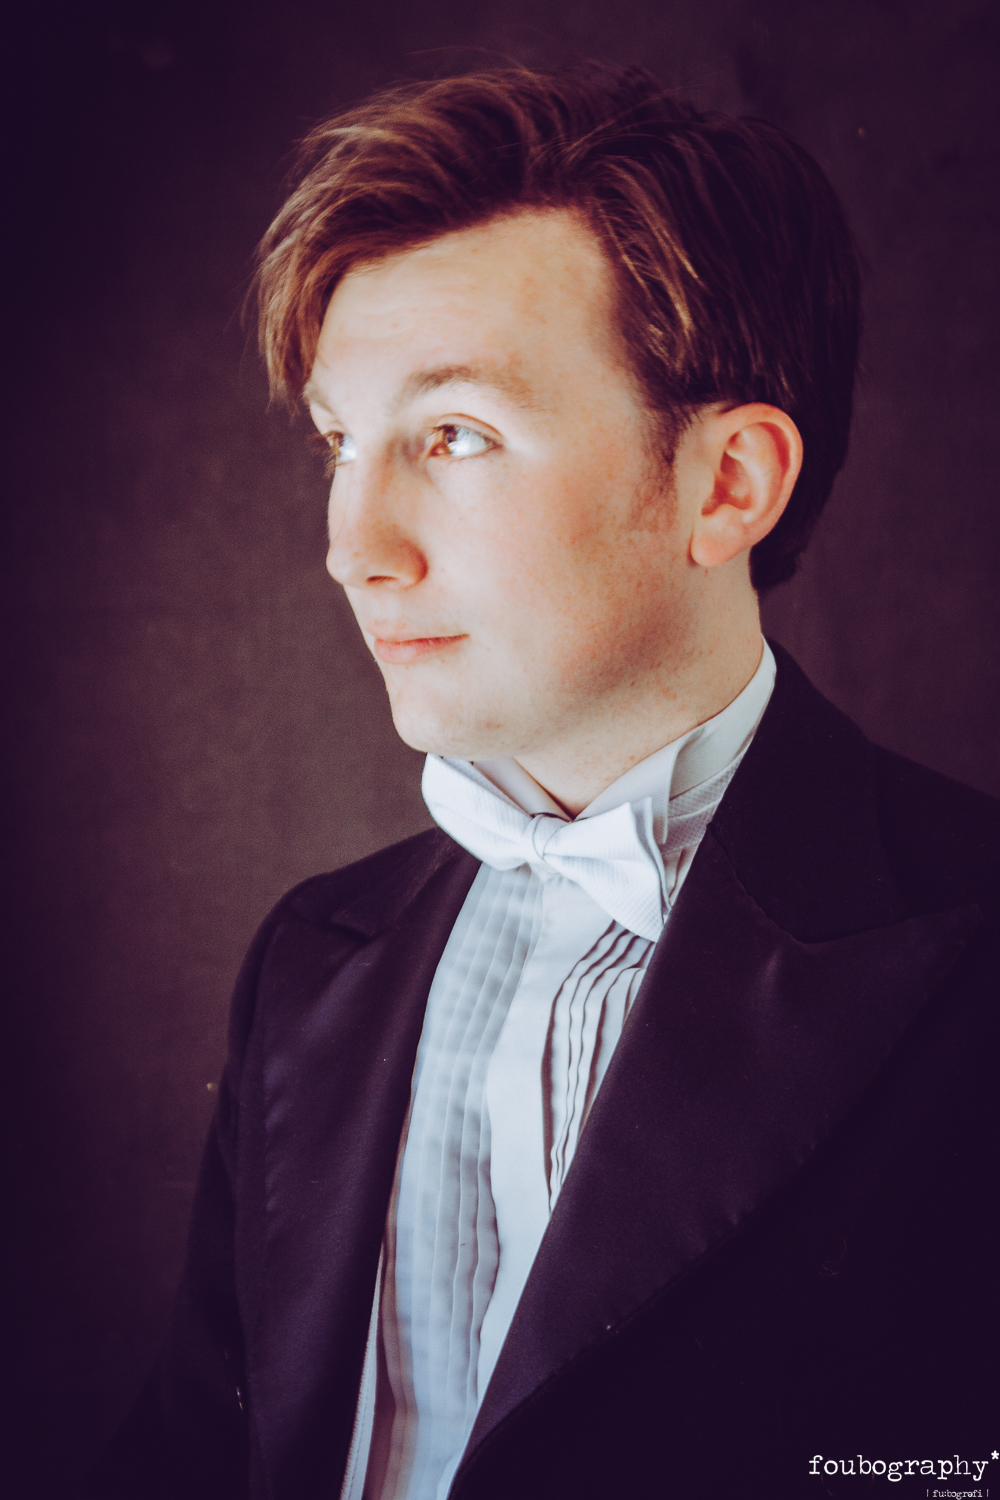 Philip Clieve   @Royal Northern College of Music - Portrait Photography - 2015_